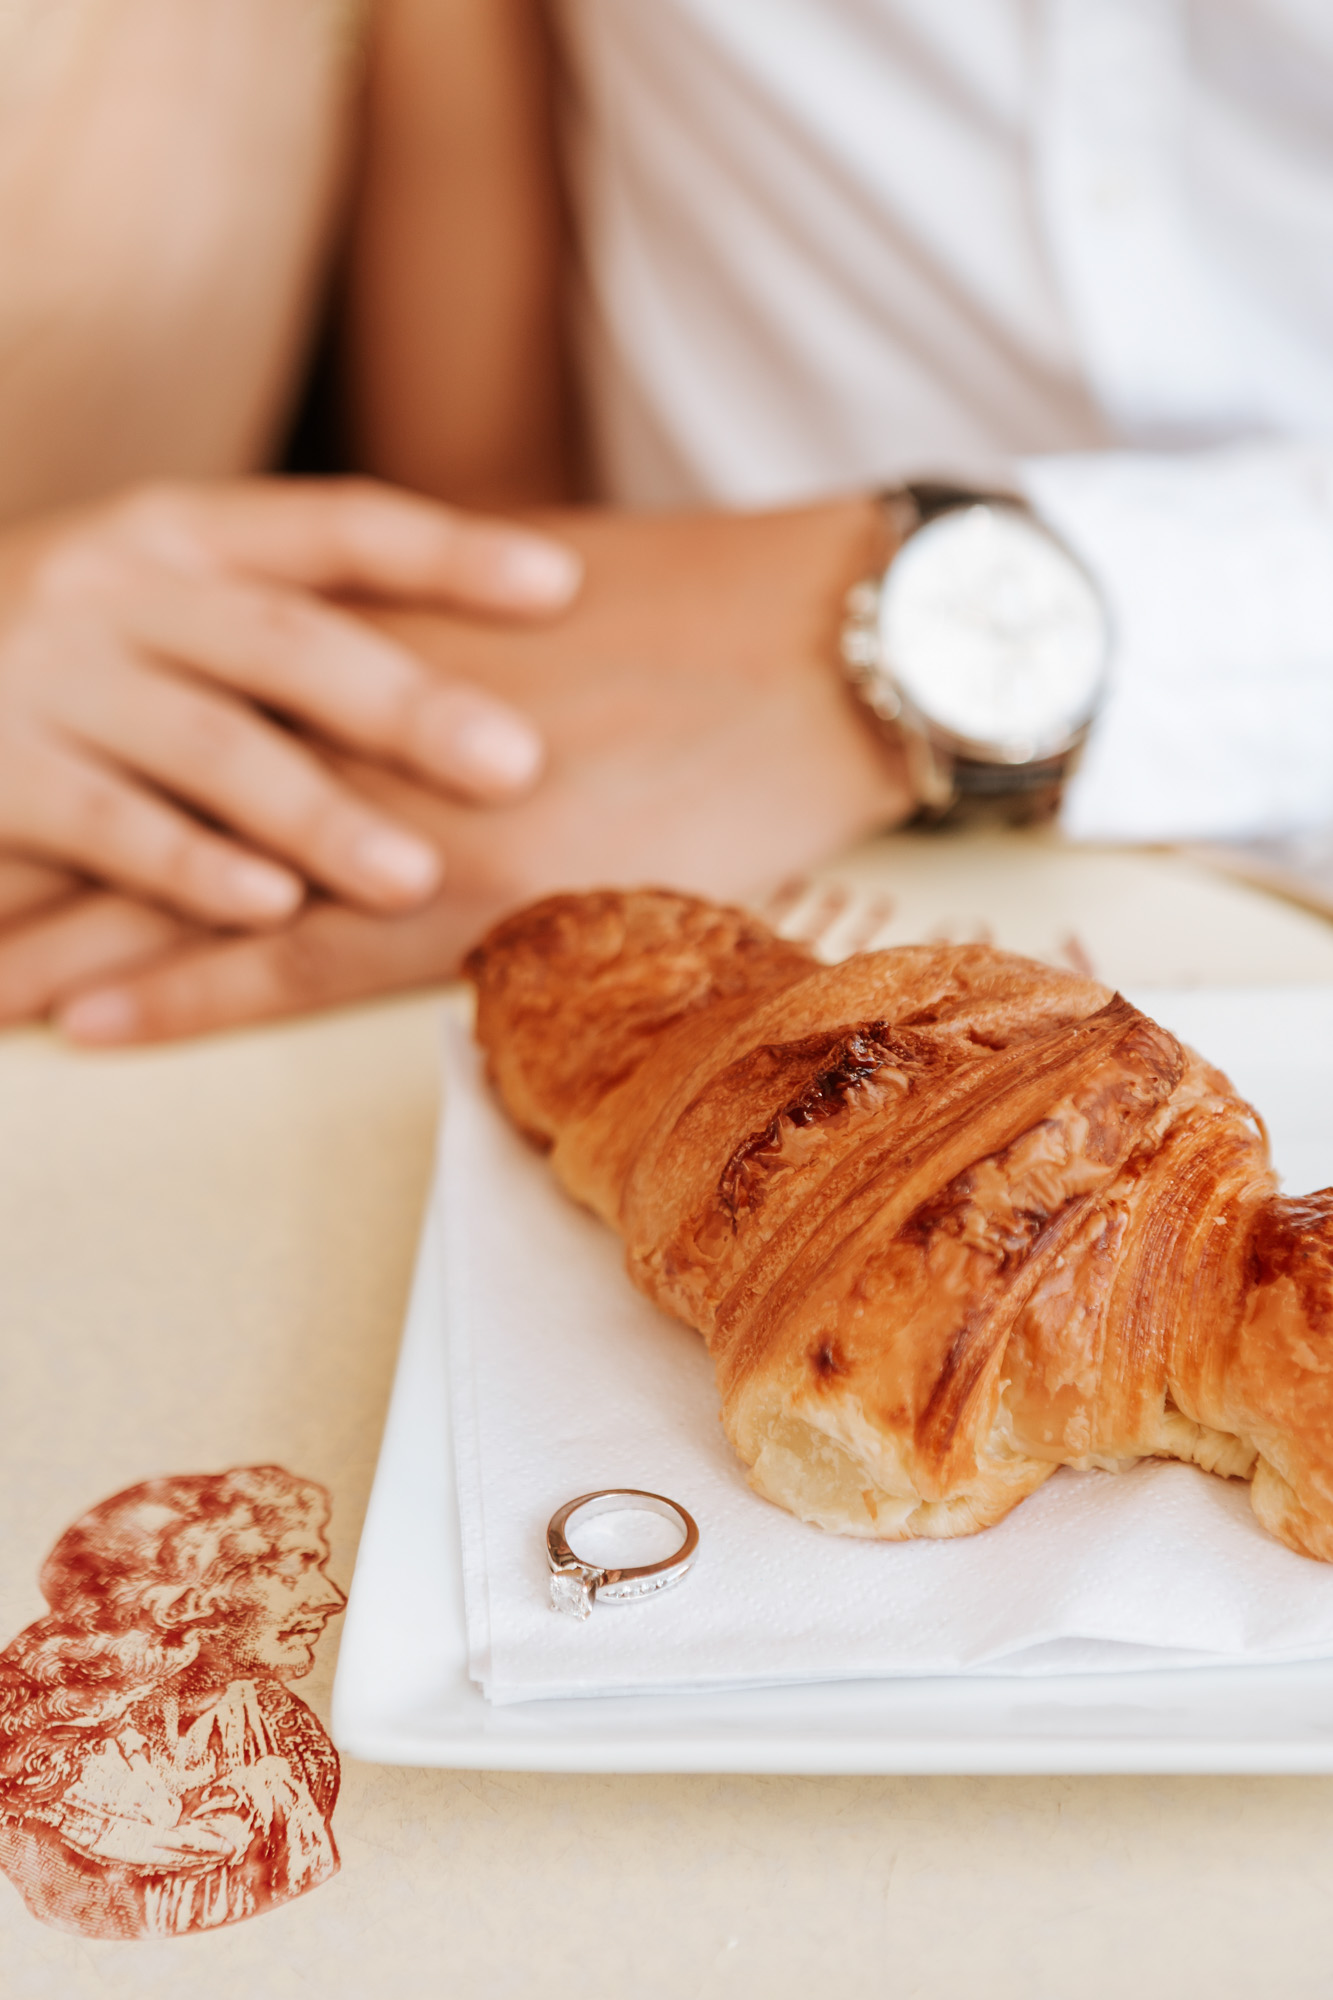 Pre-wedding diamond engagement ring next to coffee and croissant at cafe captured by Paris Photographer Federico Guendel